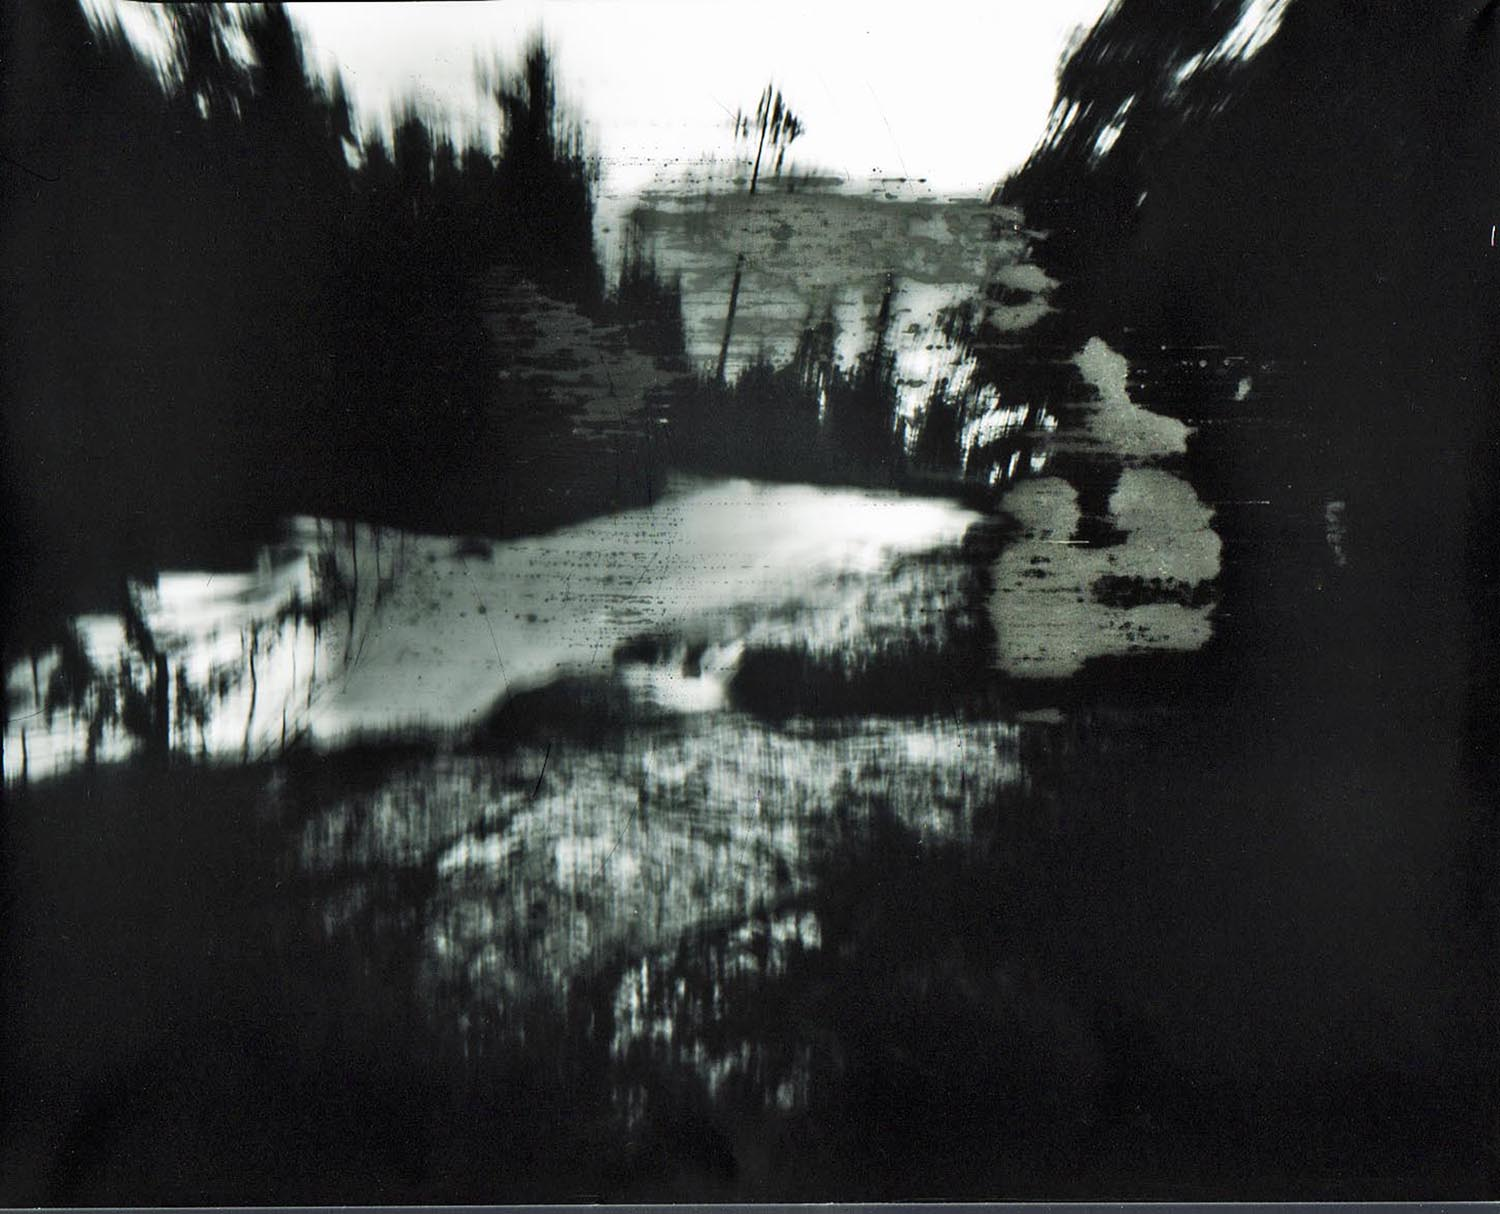 Johanna Moore,  Indian Pond Road ,2014, 8 x 10 pinhole camera image, paper negative, digital enlargement, 34.5 x 39.5 inches